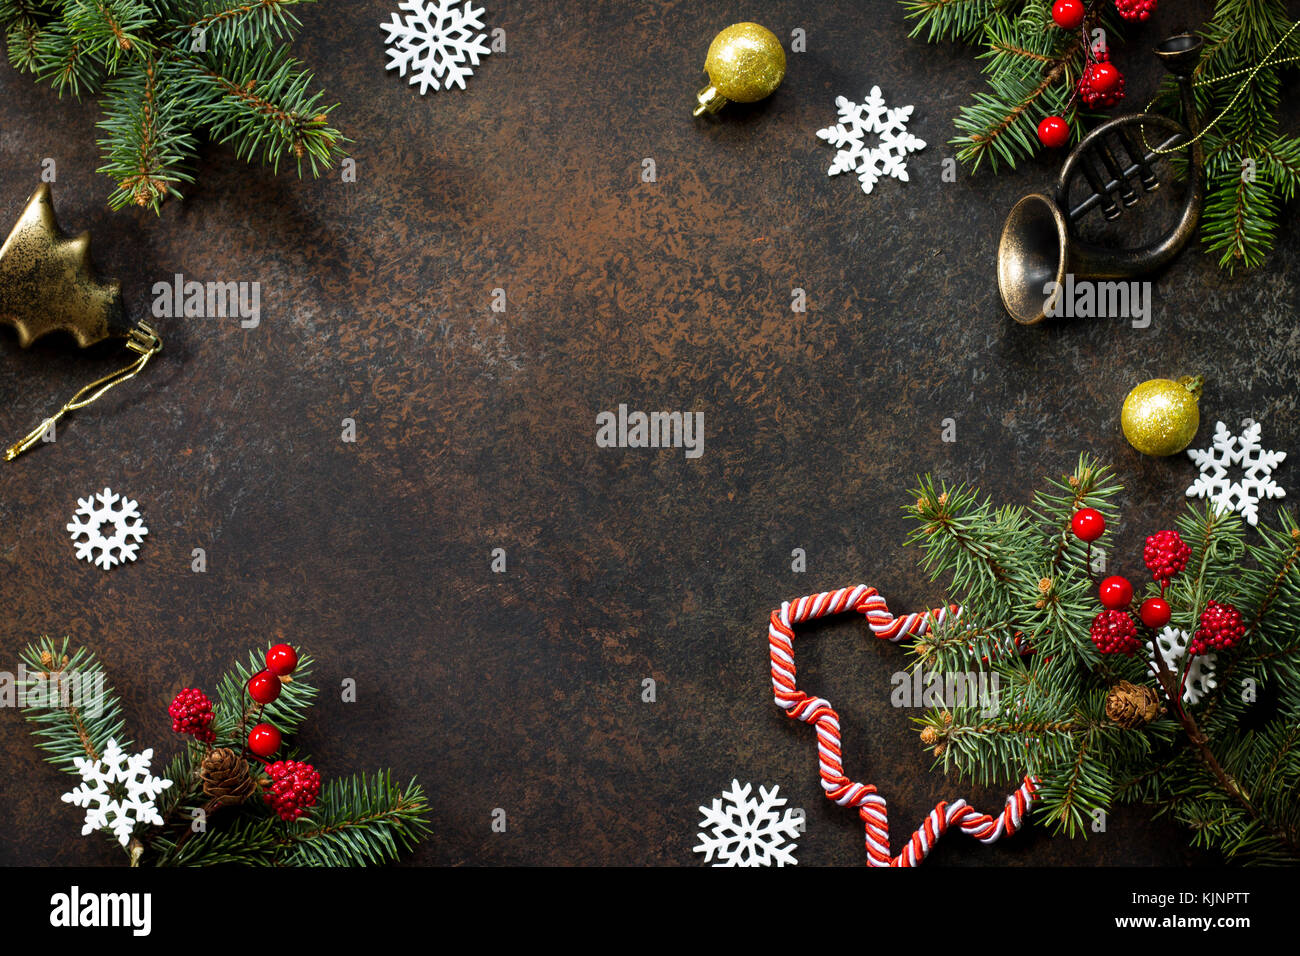 Christmas Background Frame Or Greeting Xmas Card Christmas Tree And